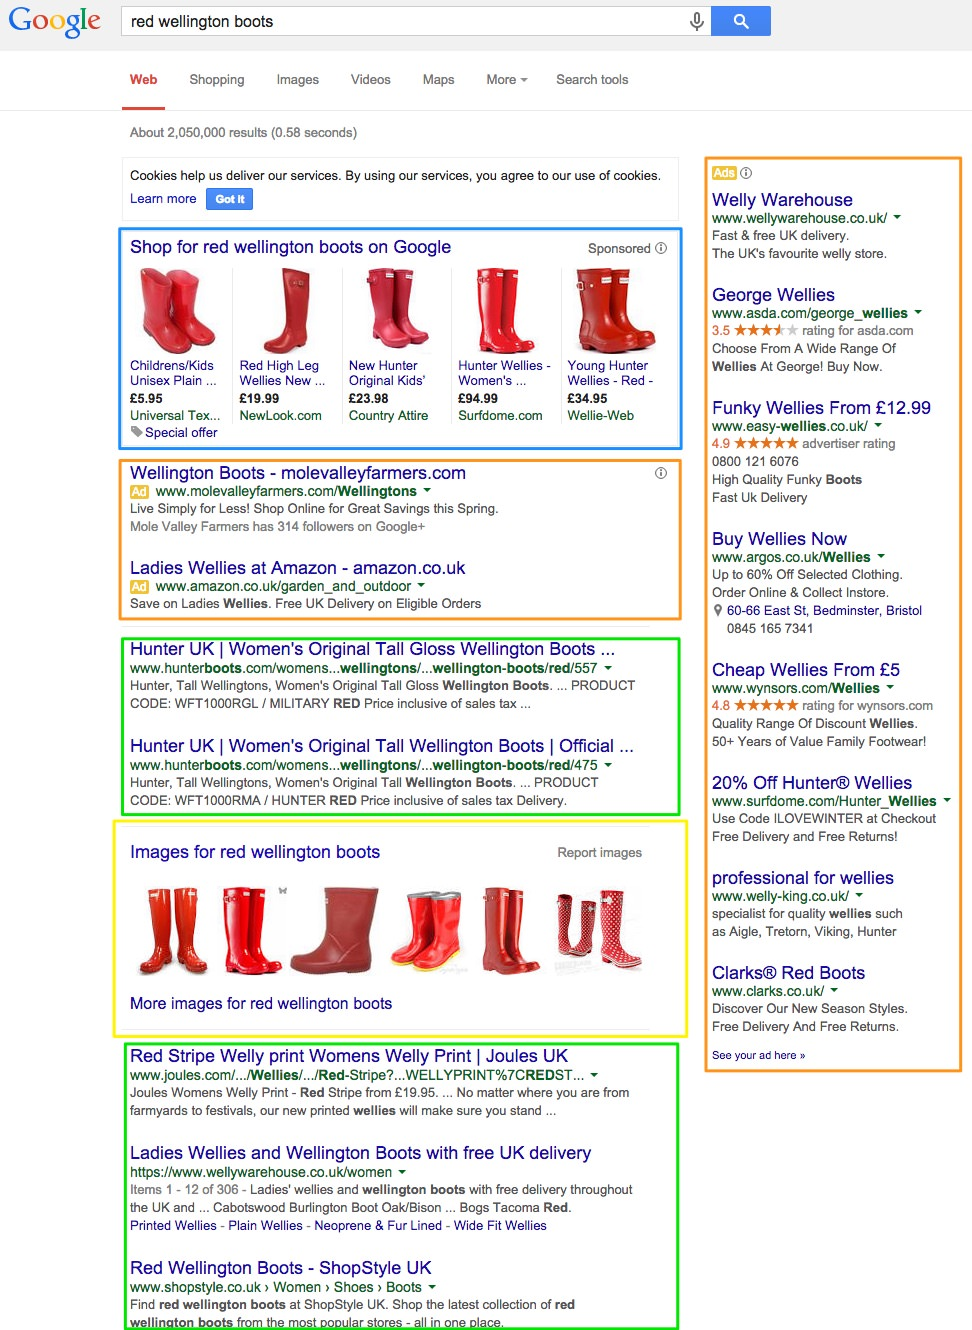 Image 2: Google's search results pages offer various ways to promote products and services.